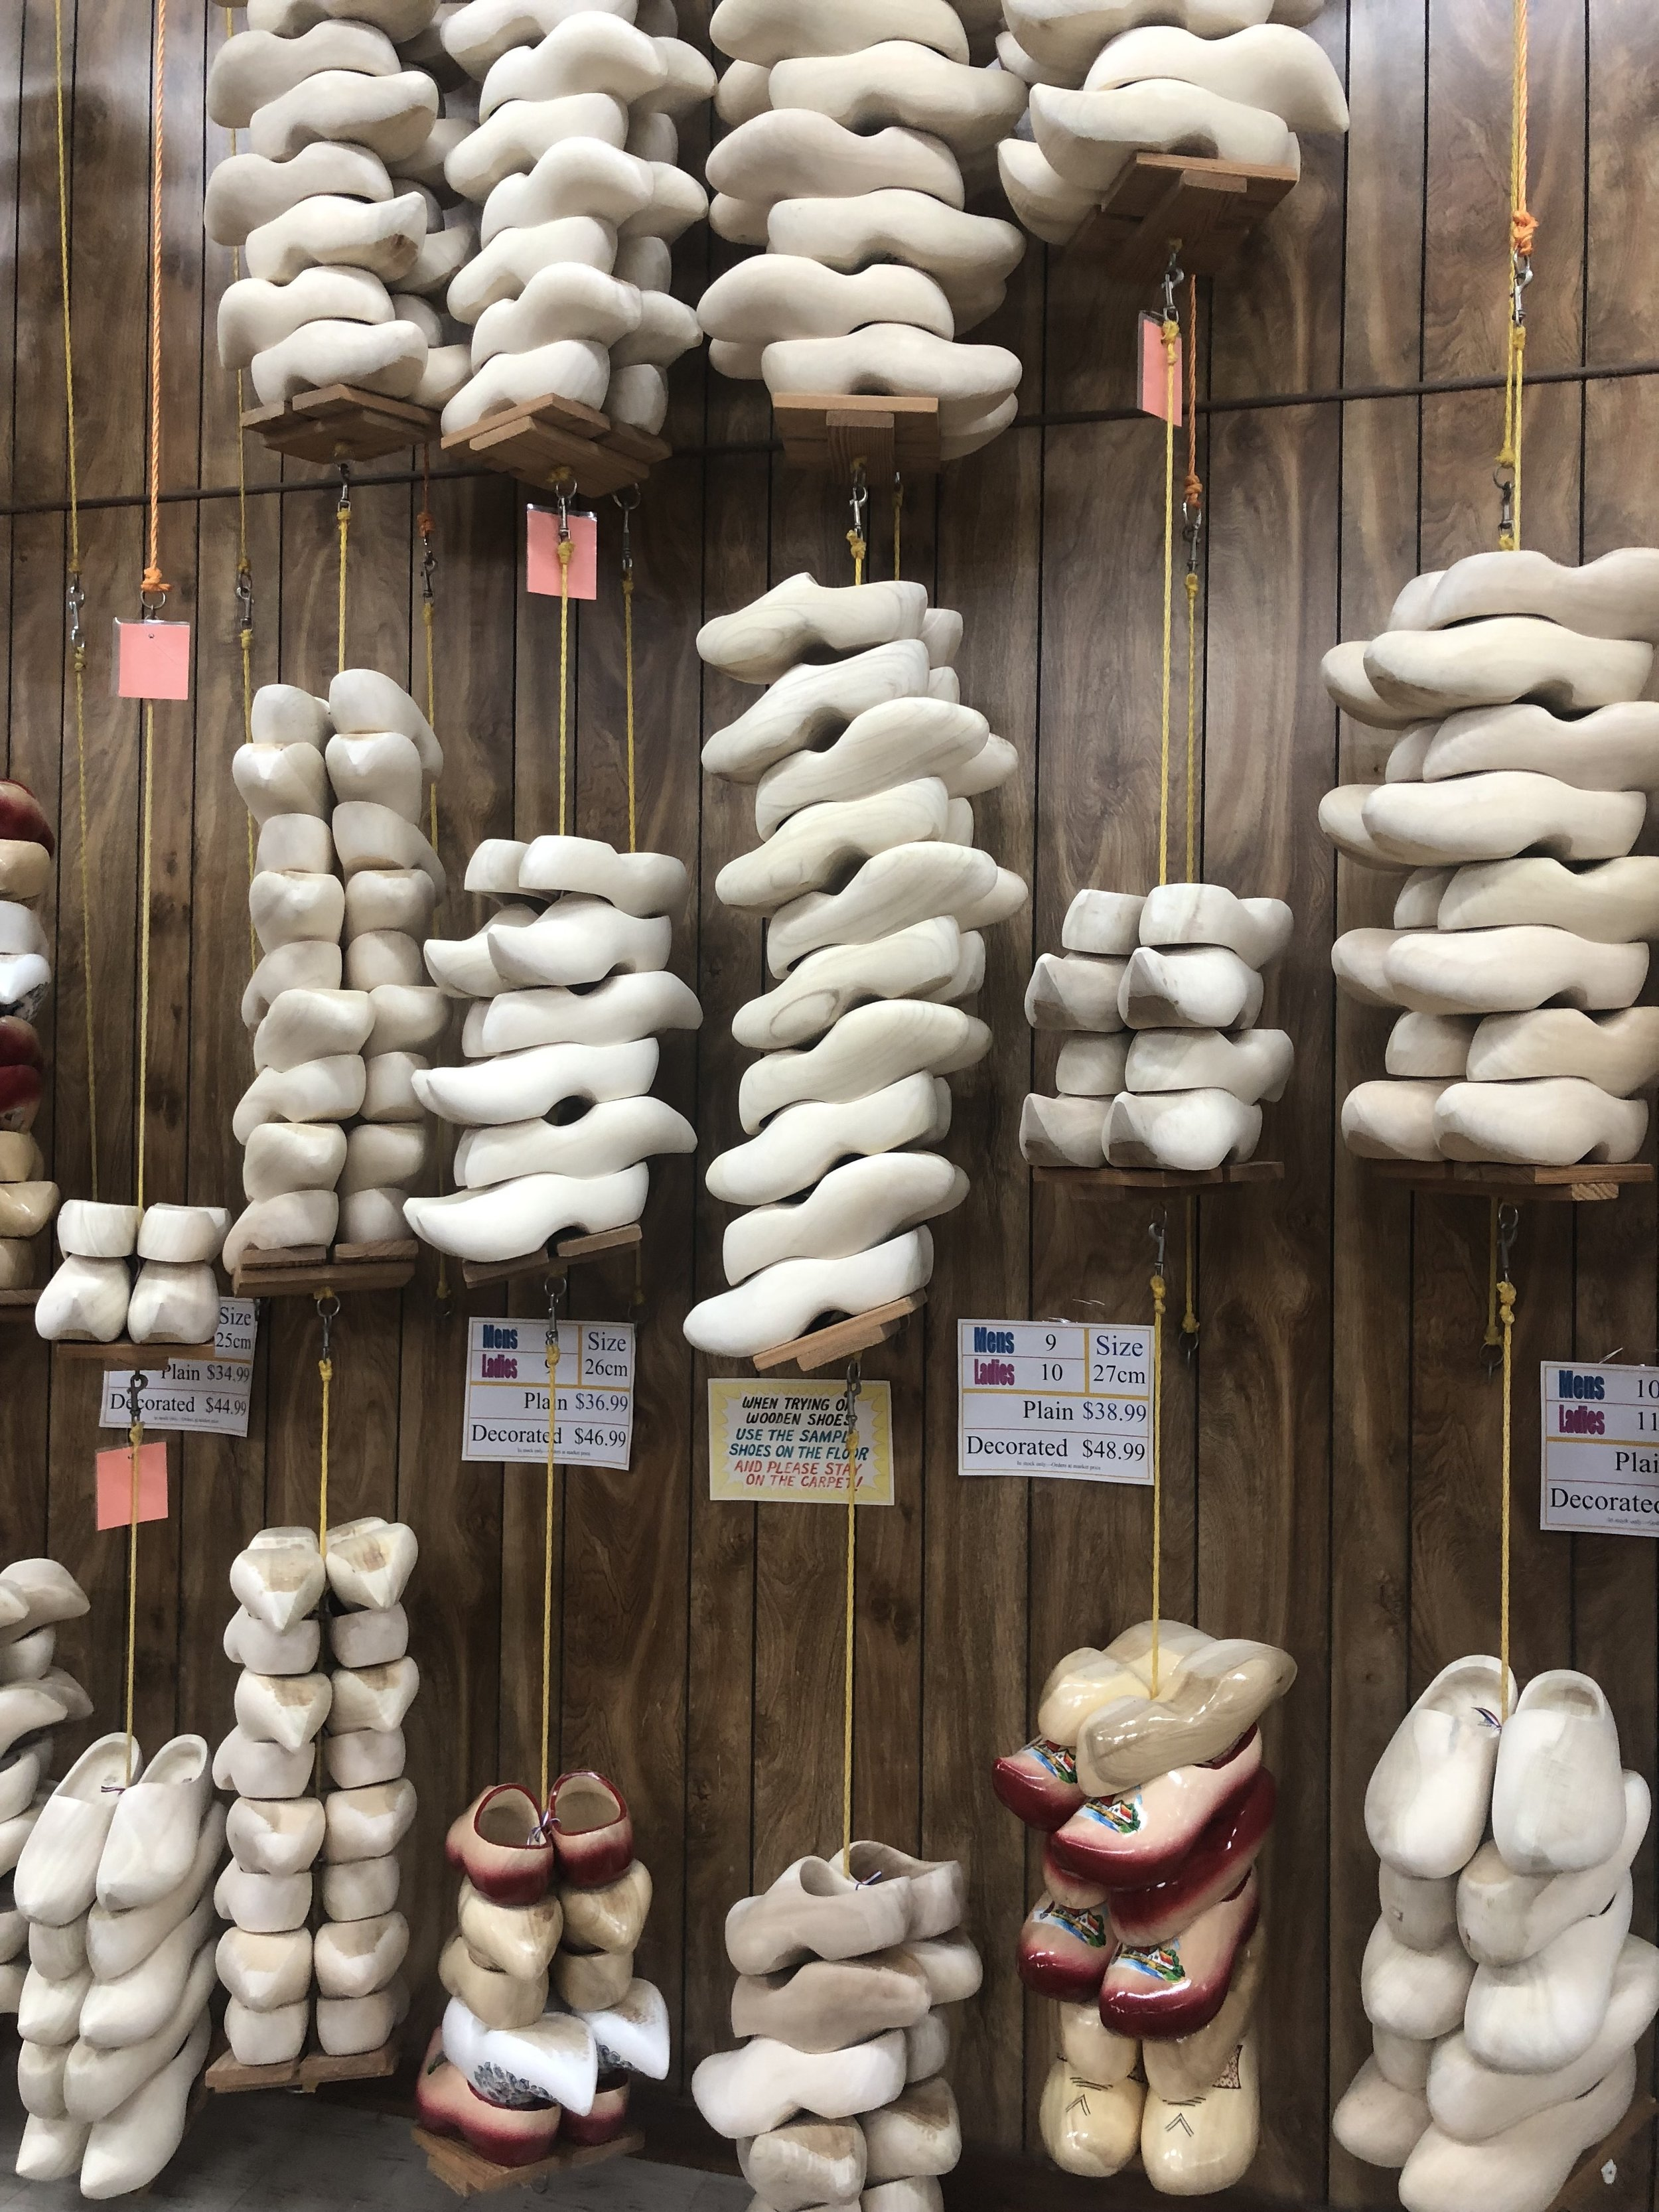 You can be fitted and purchase wooden shoes from Holland.